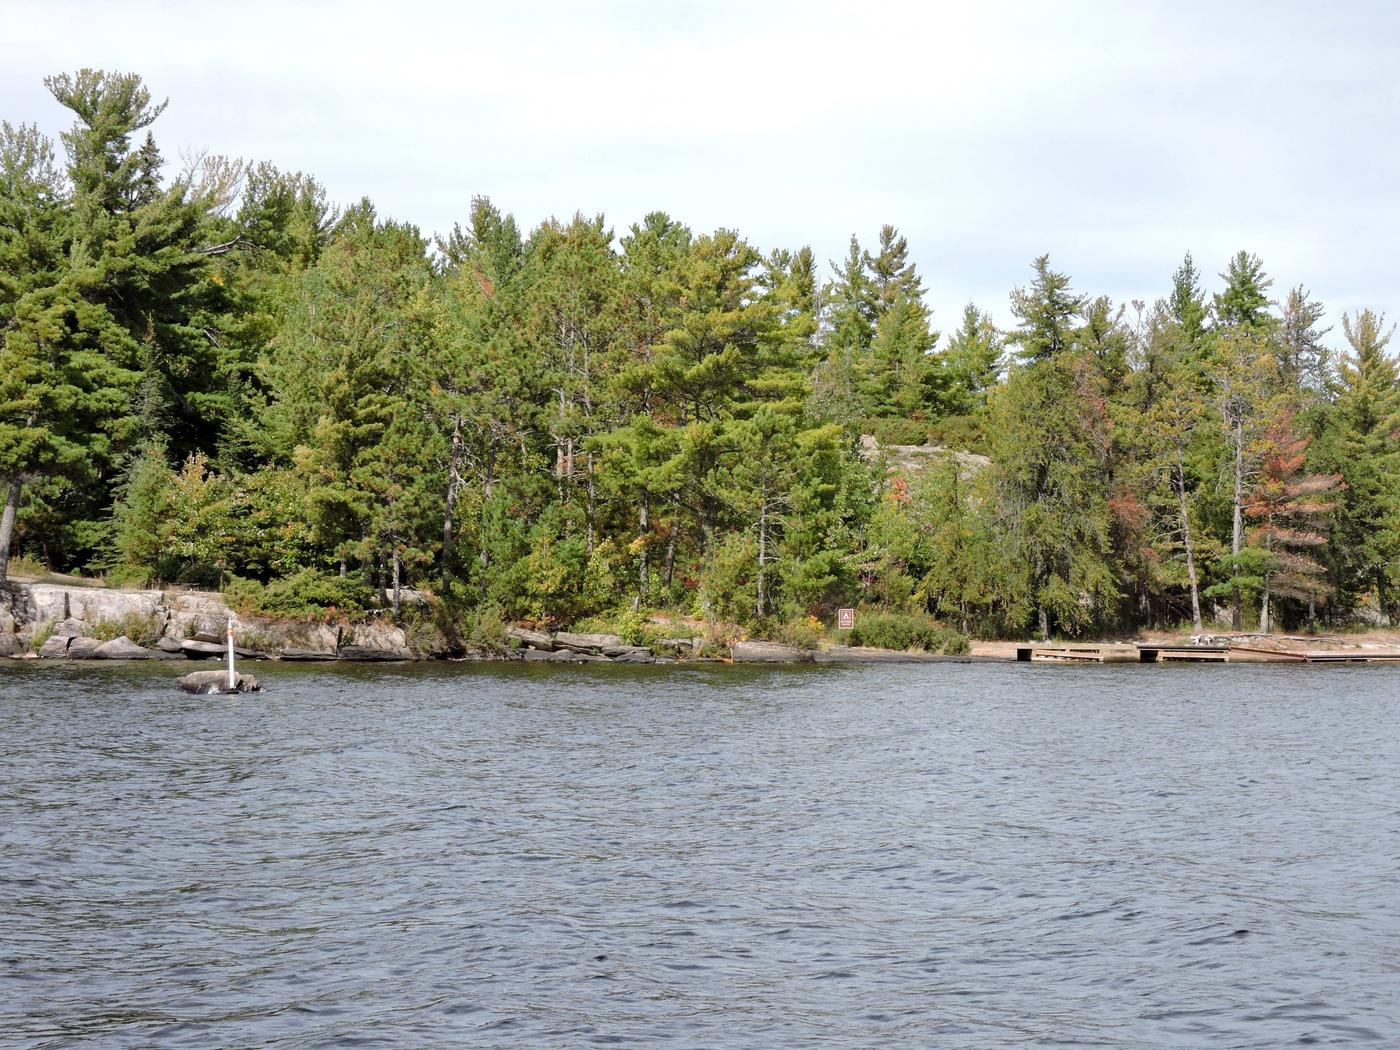 R11 - Dryweed IslandView of campsite from the water